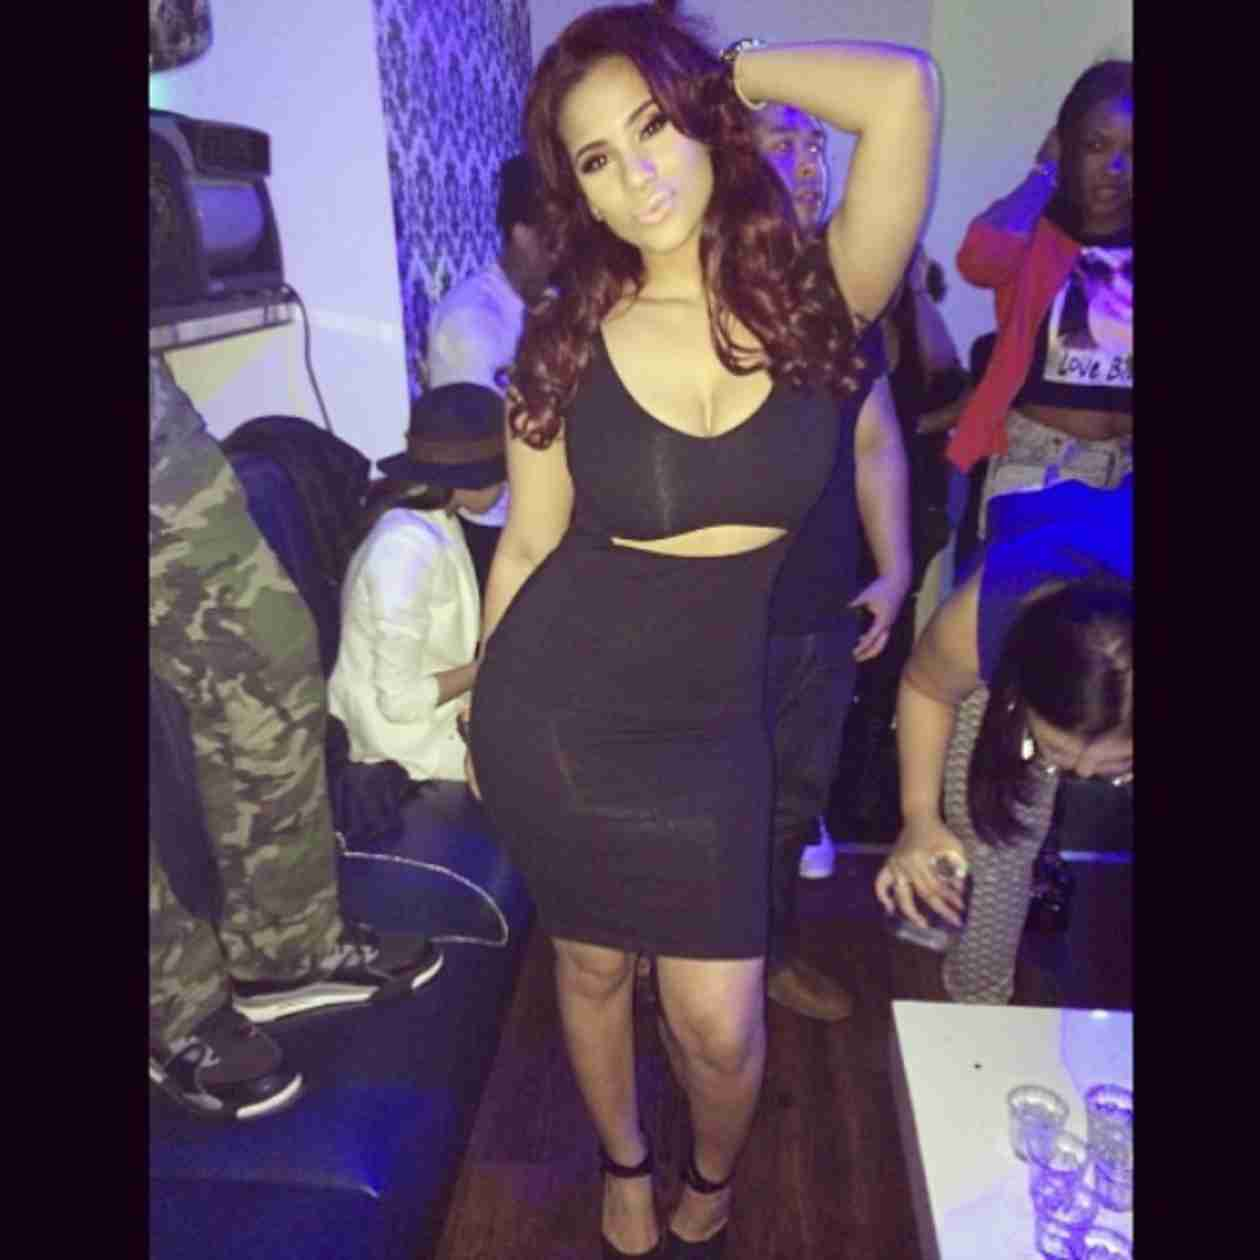 Cyn Santana Flaunts Fab Look After Breast Reduction Surgery (PHOTOS)